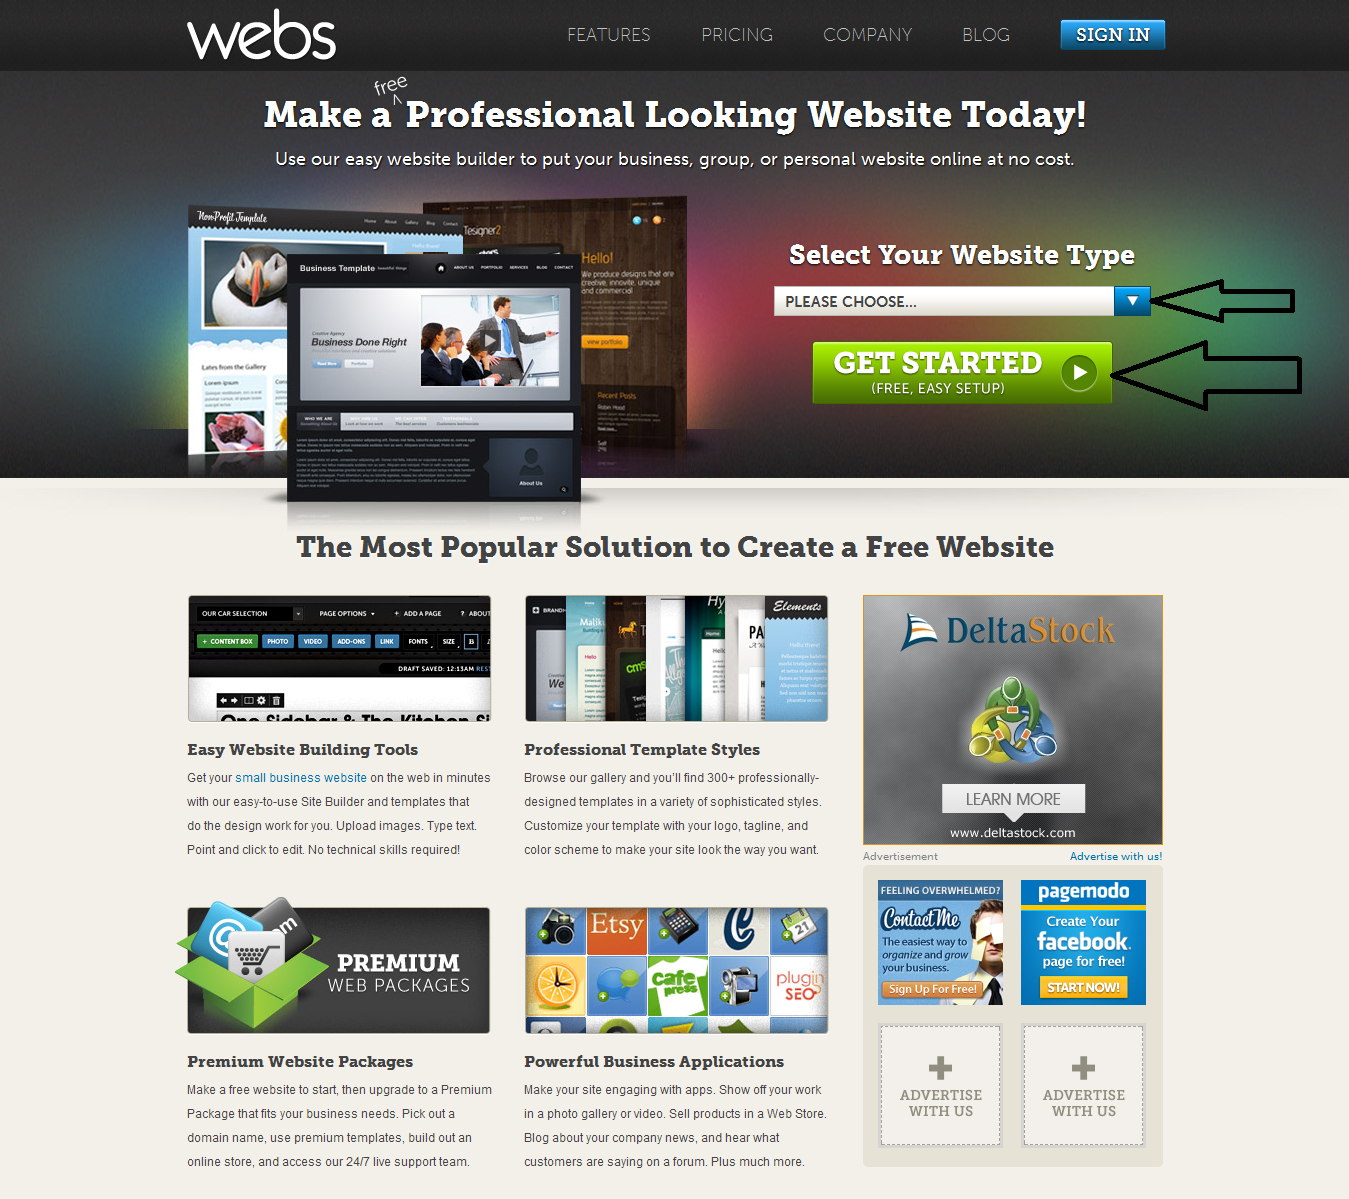 earn money and fix pc problems goto webs com and select your website type and click get started then up the fields you will get your website now you can design your site as you want